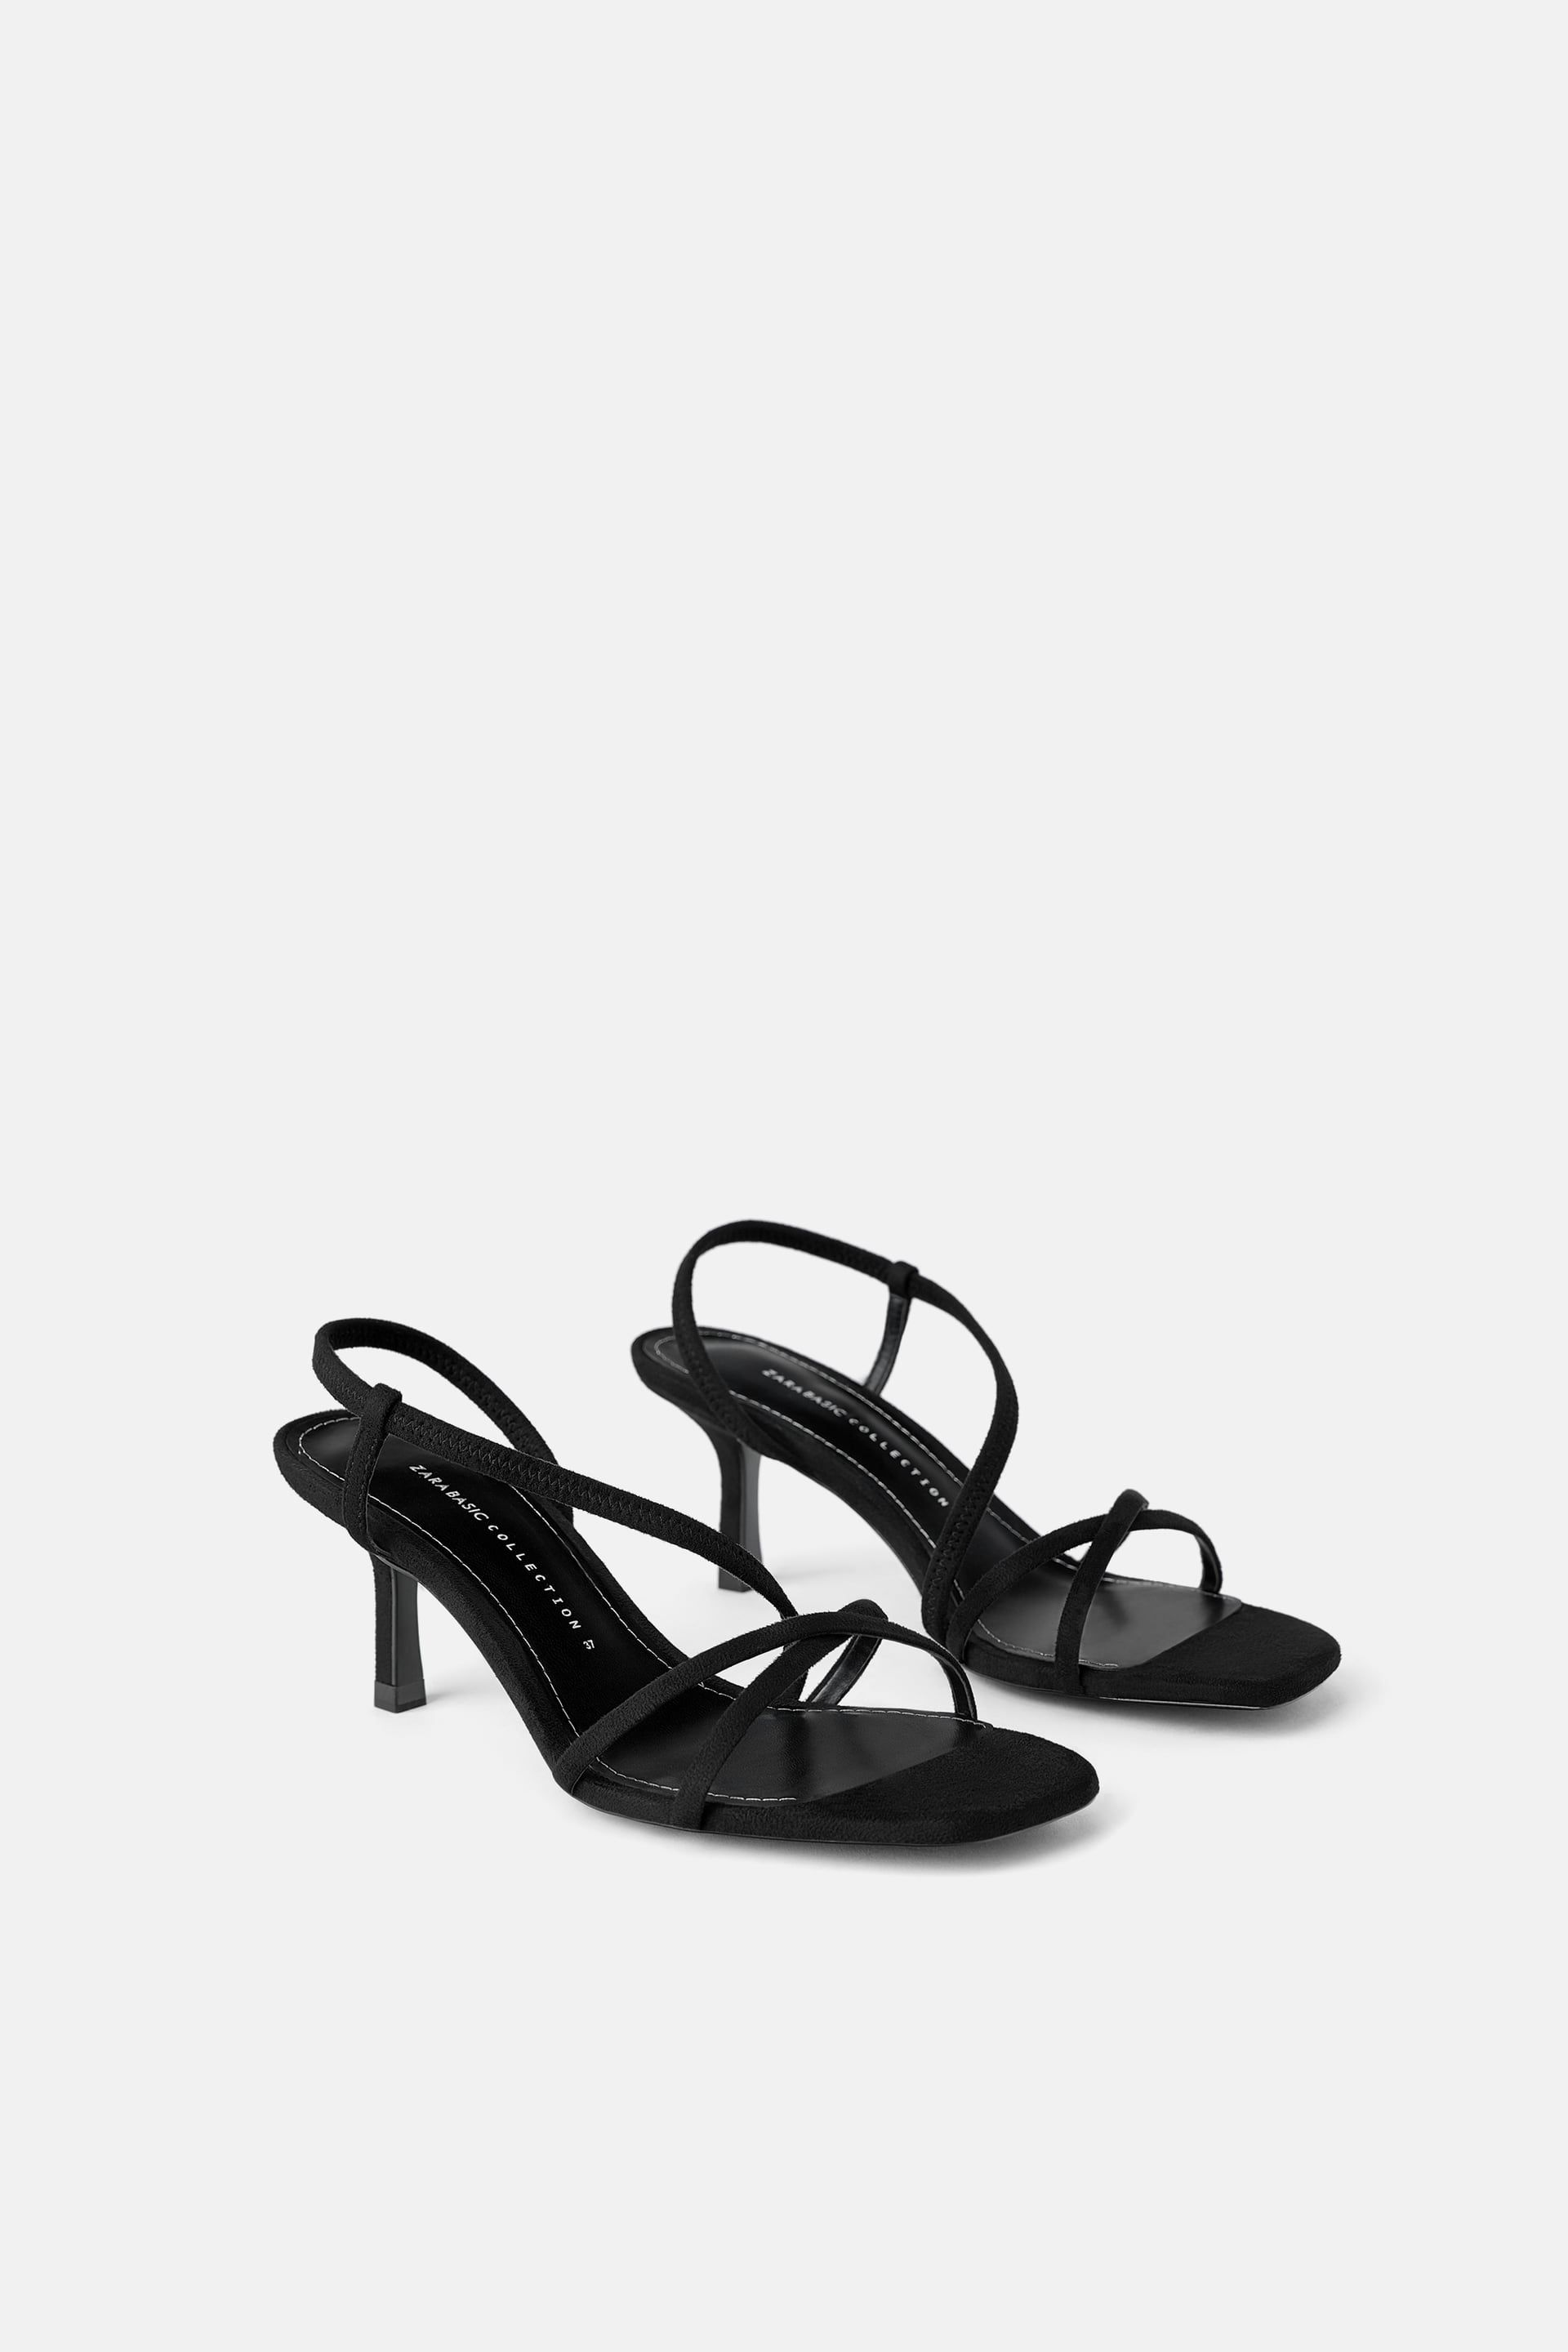 Mid height heeled elastic strap sandals | Mid heel sandals